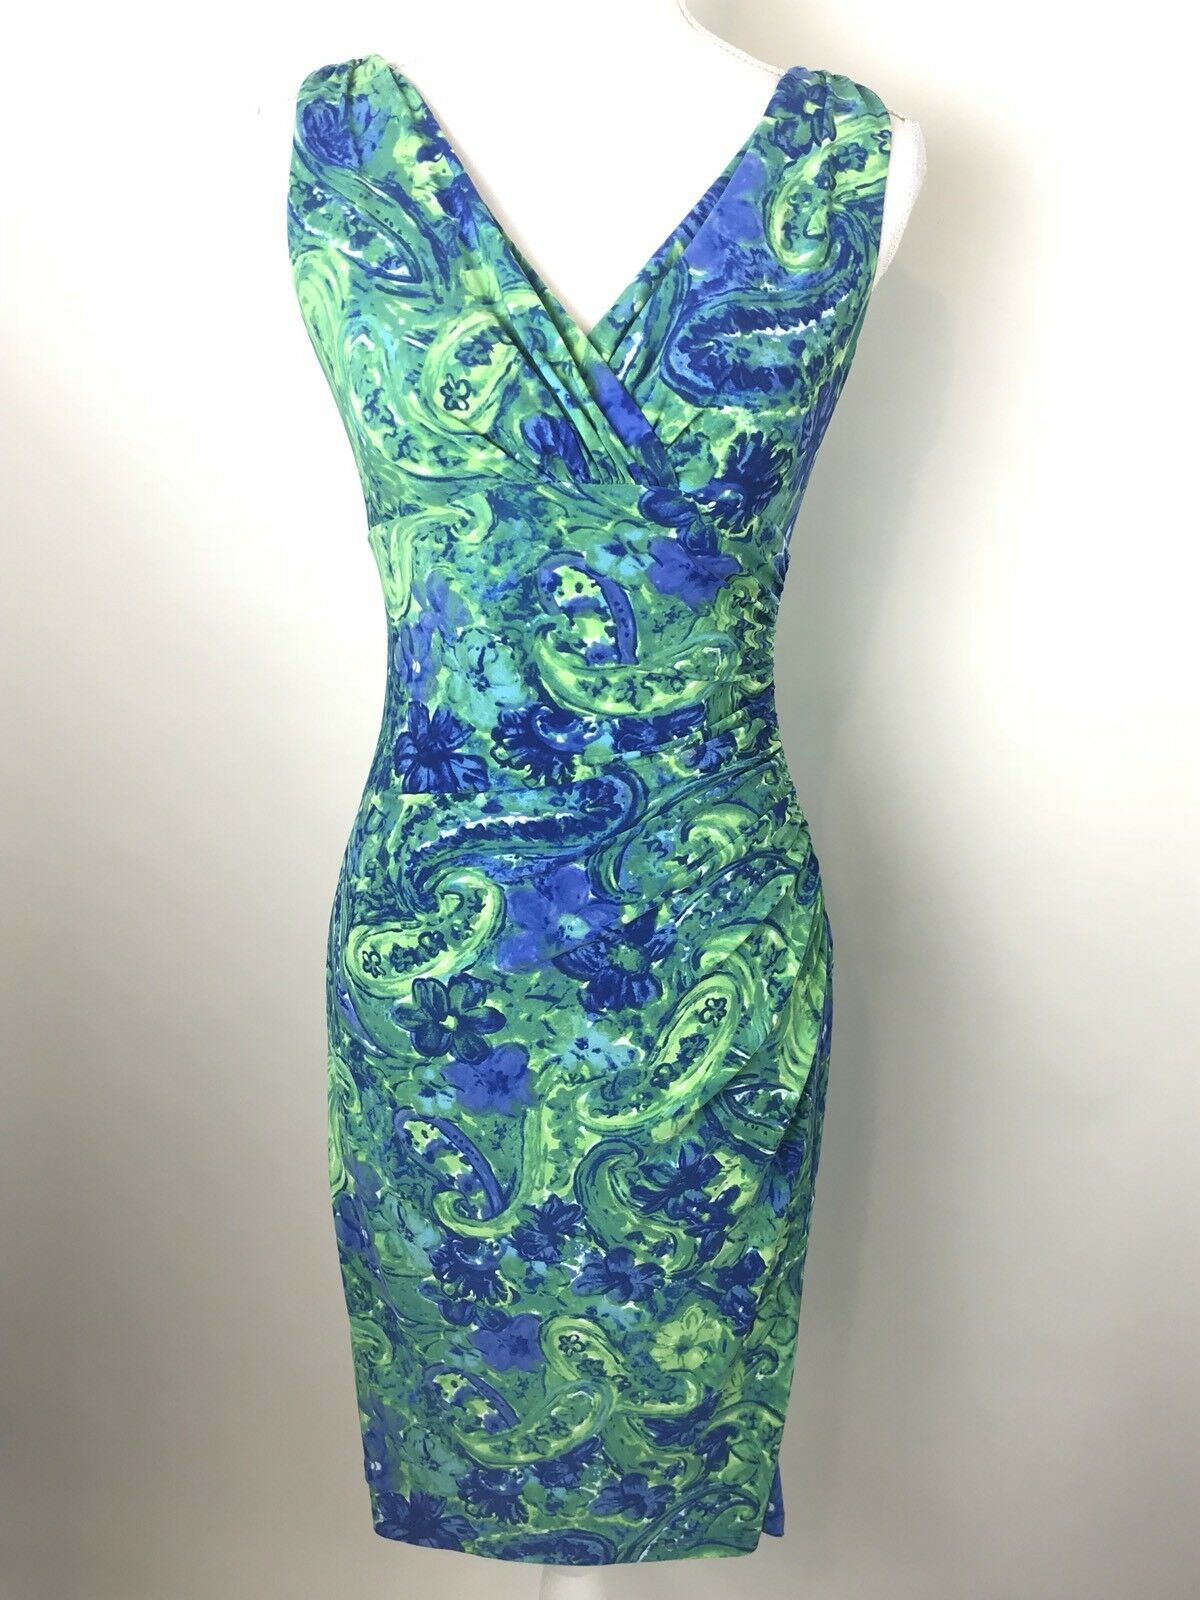 Lauren Ralph Lauren Floral Dress Size 2 Tropical Cruise Women bluee Green Label